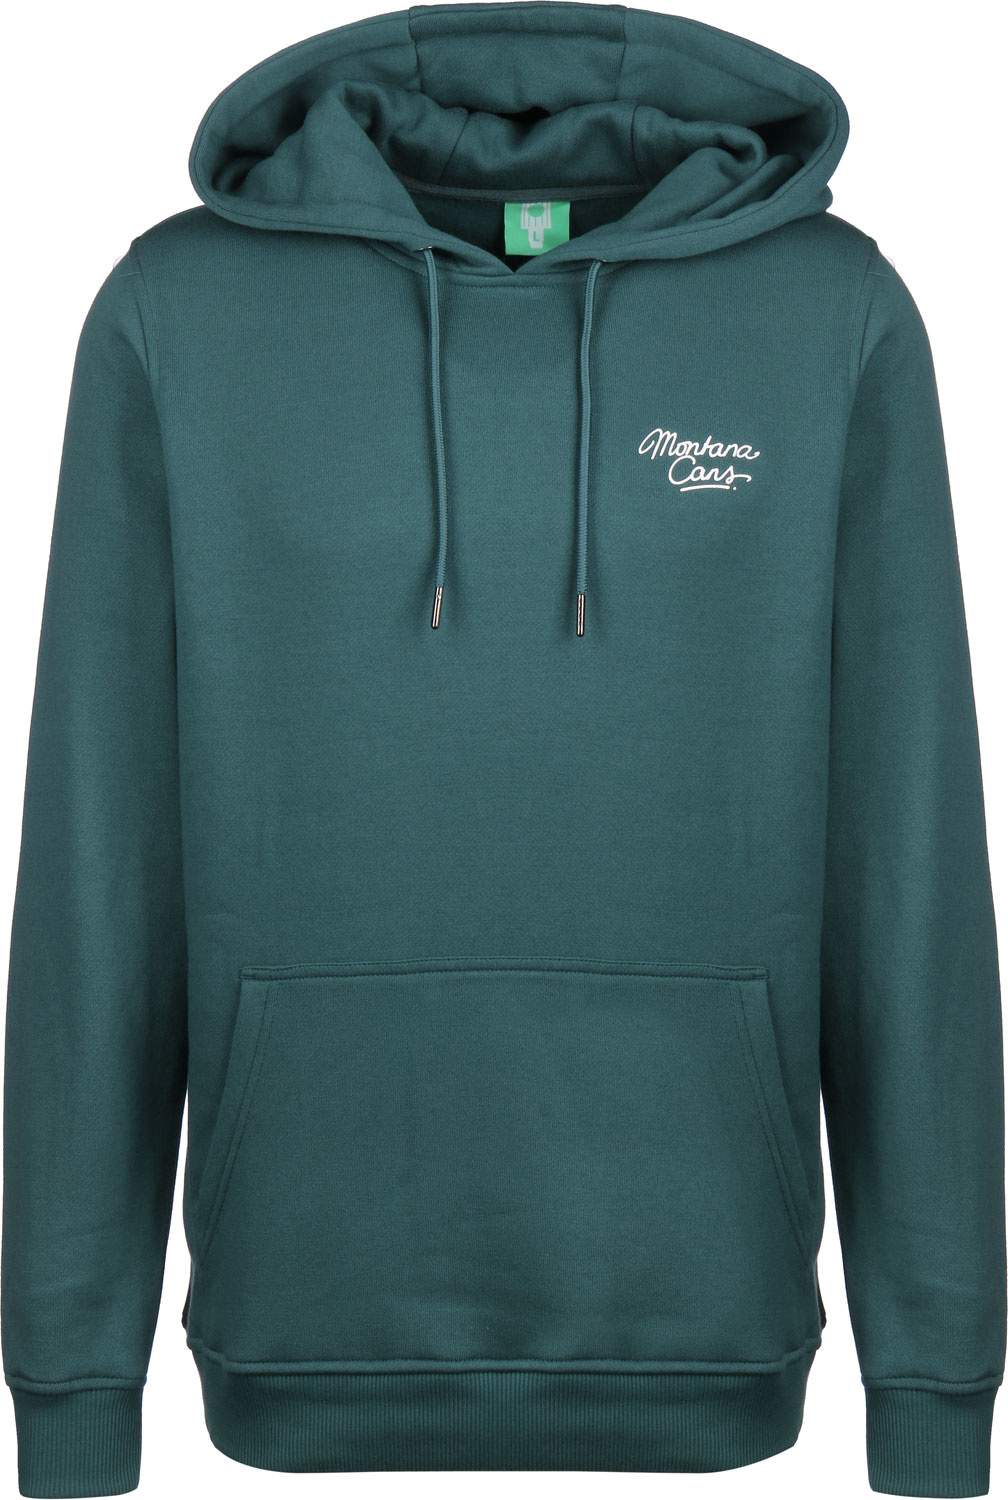 Montana Hoody - Reef Handstyle by MINA